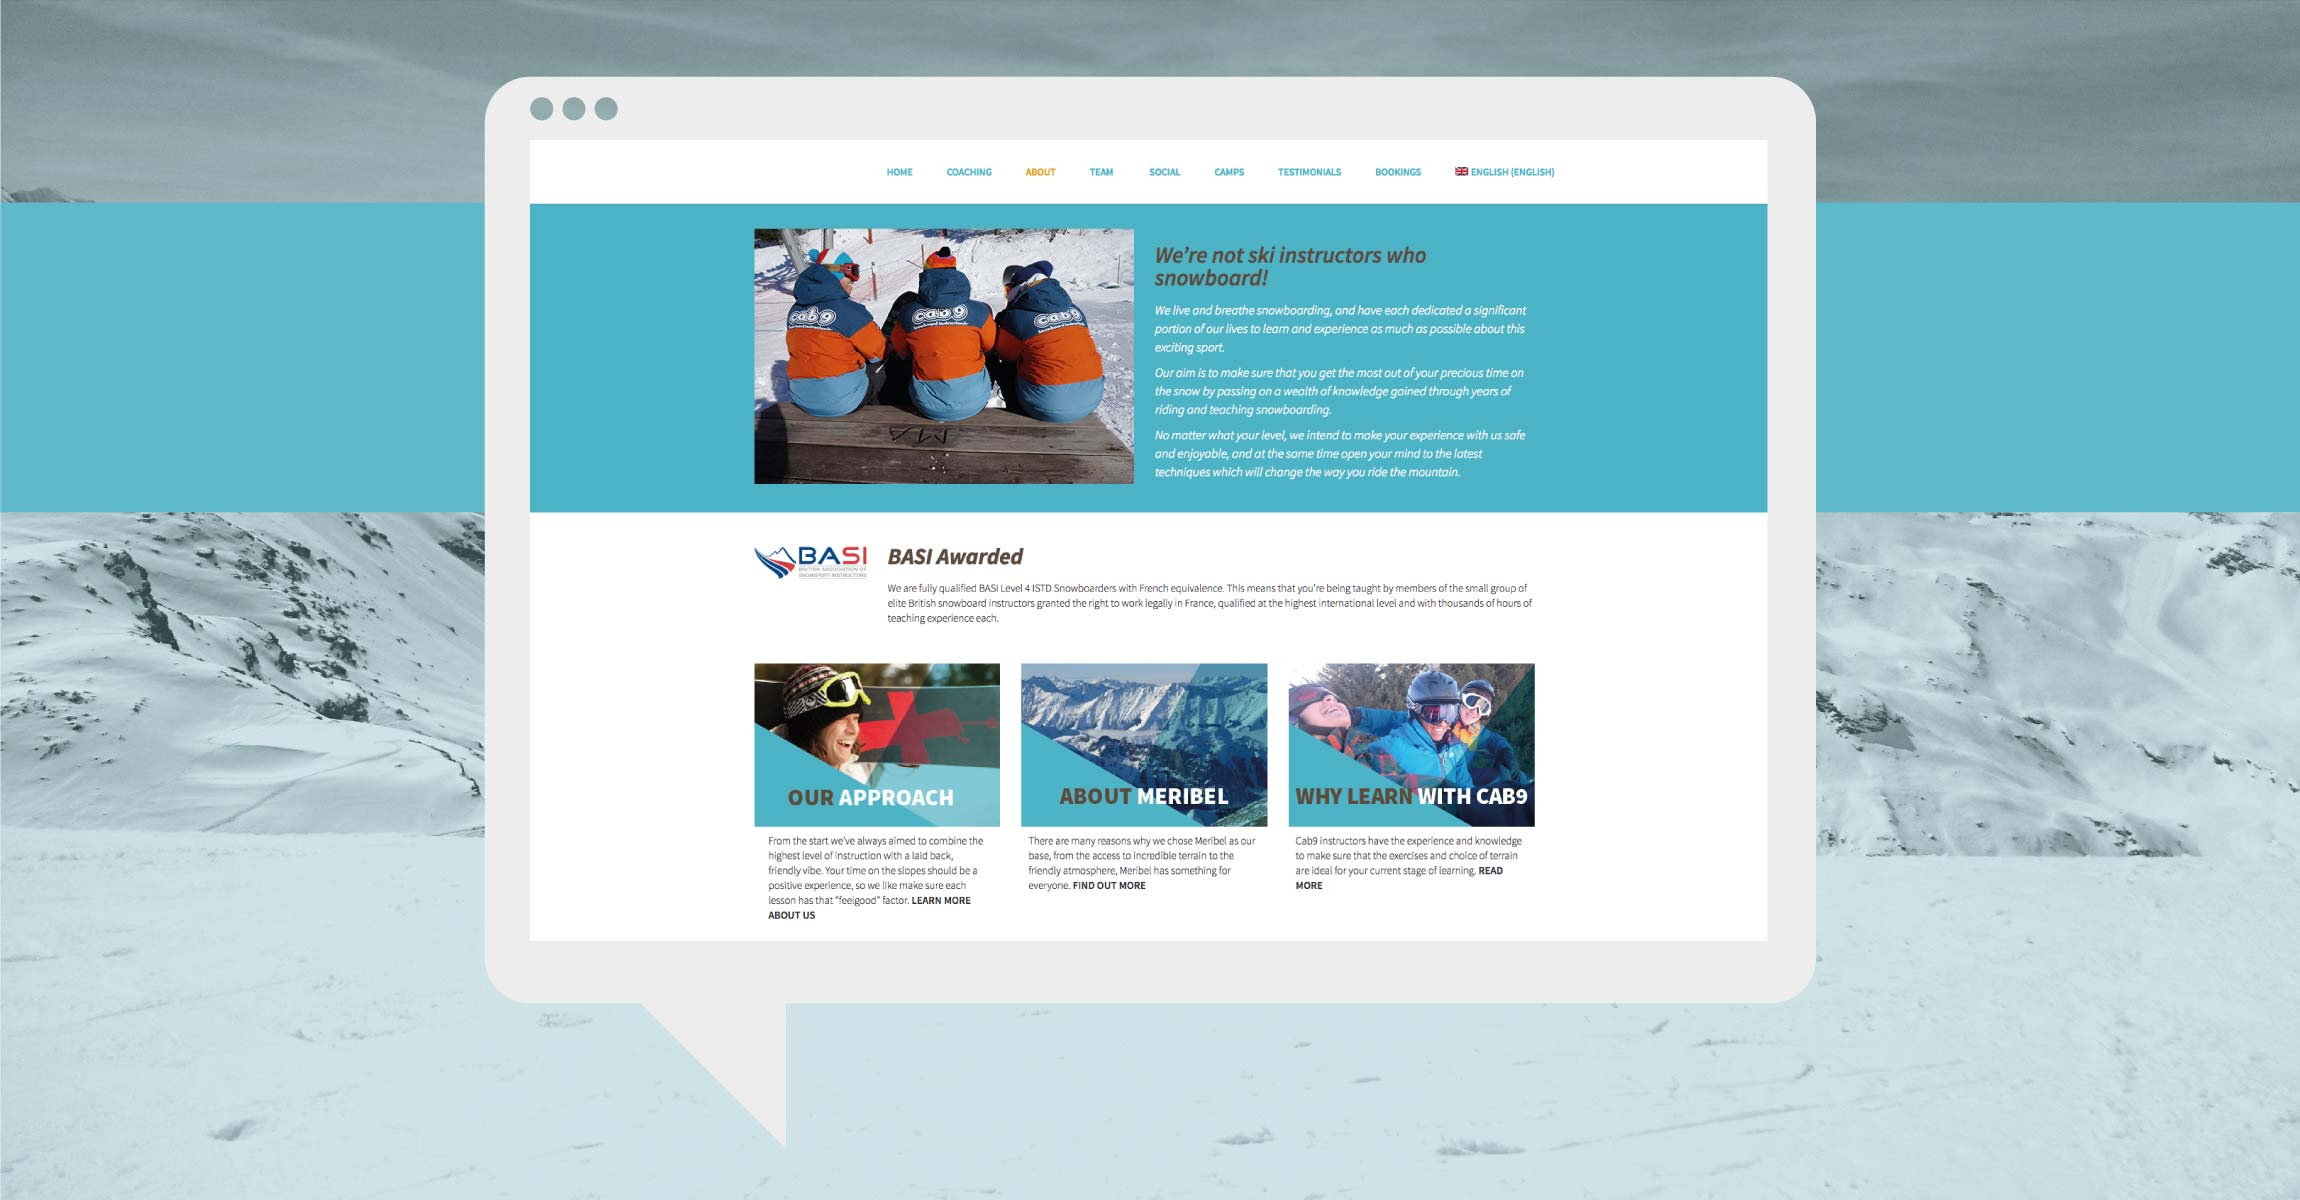 cab9-snowboard-travel-commpany-web-page-about